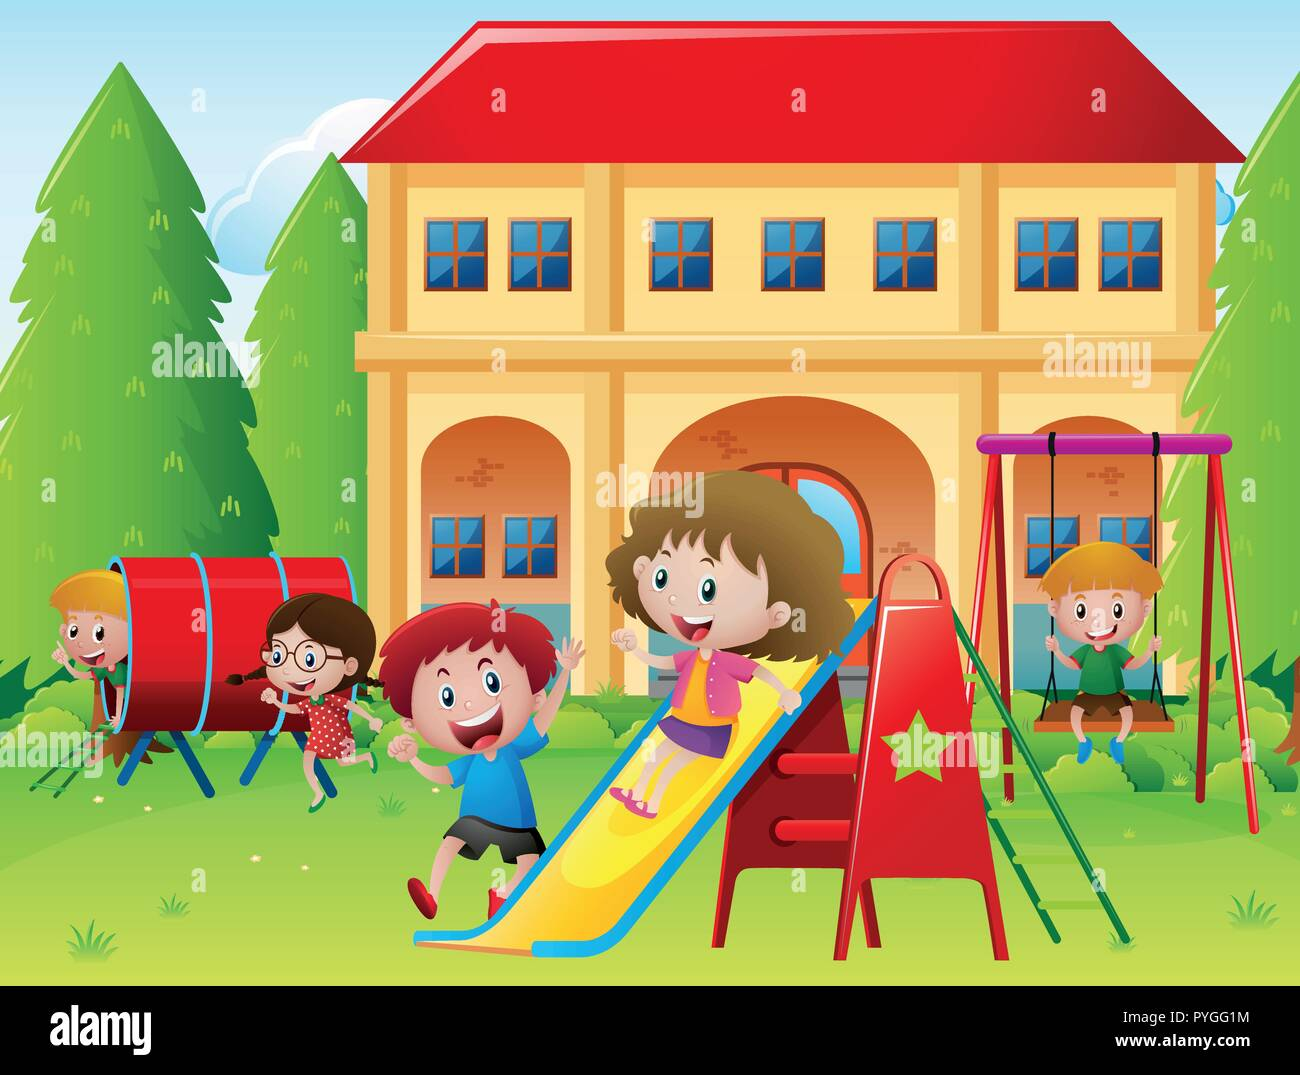 school playground stock vector images - alamy